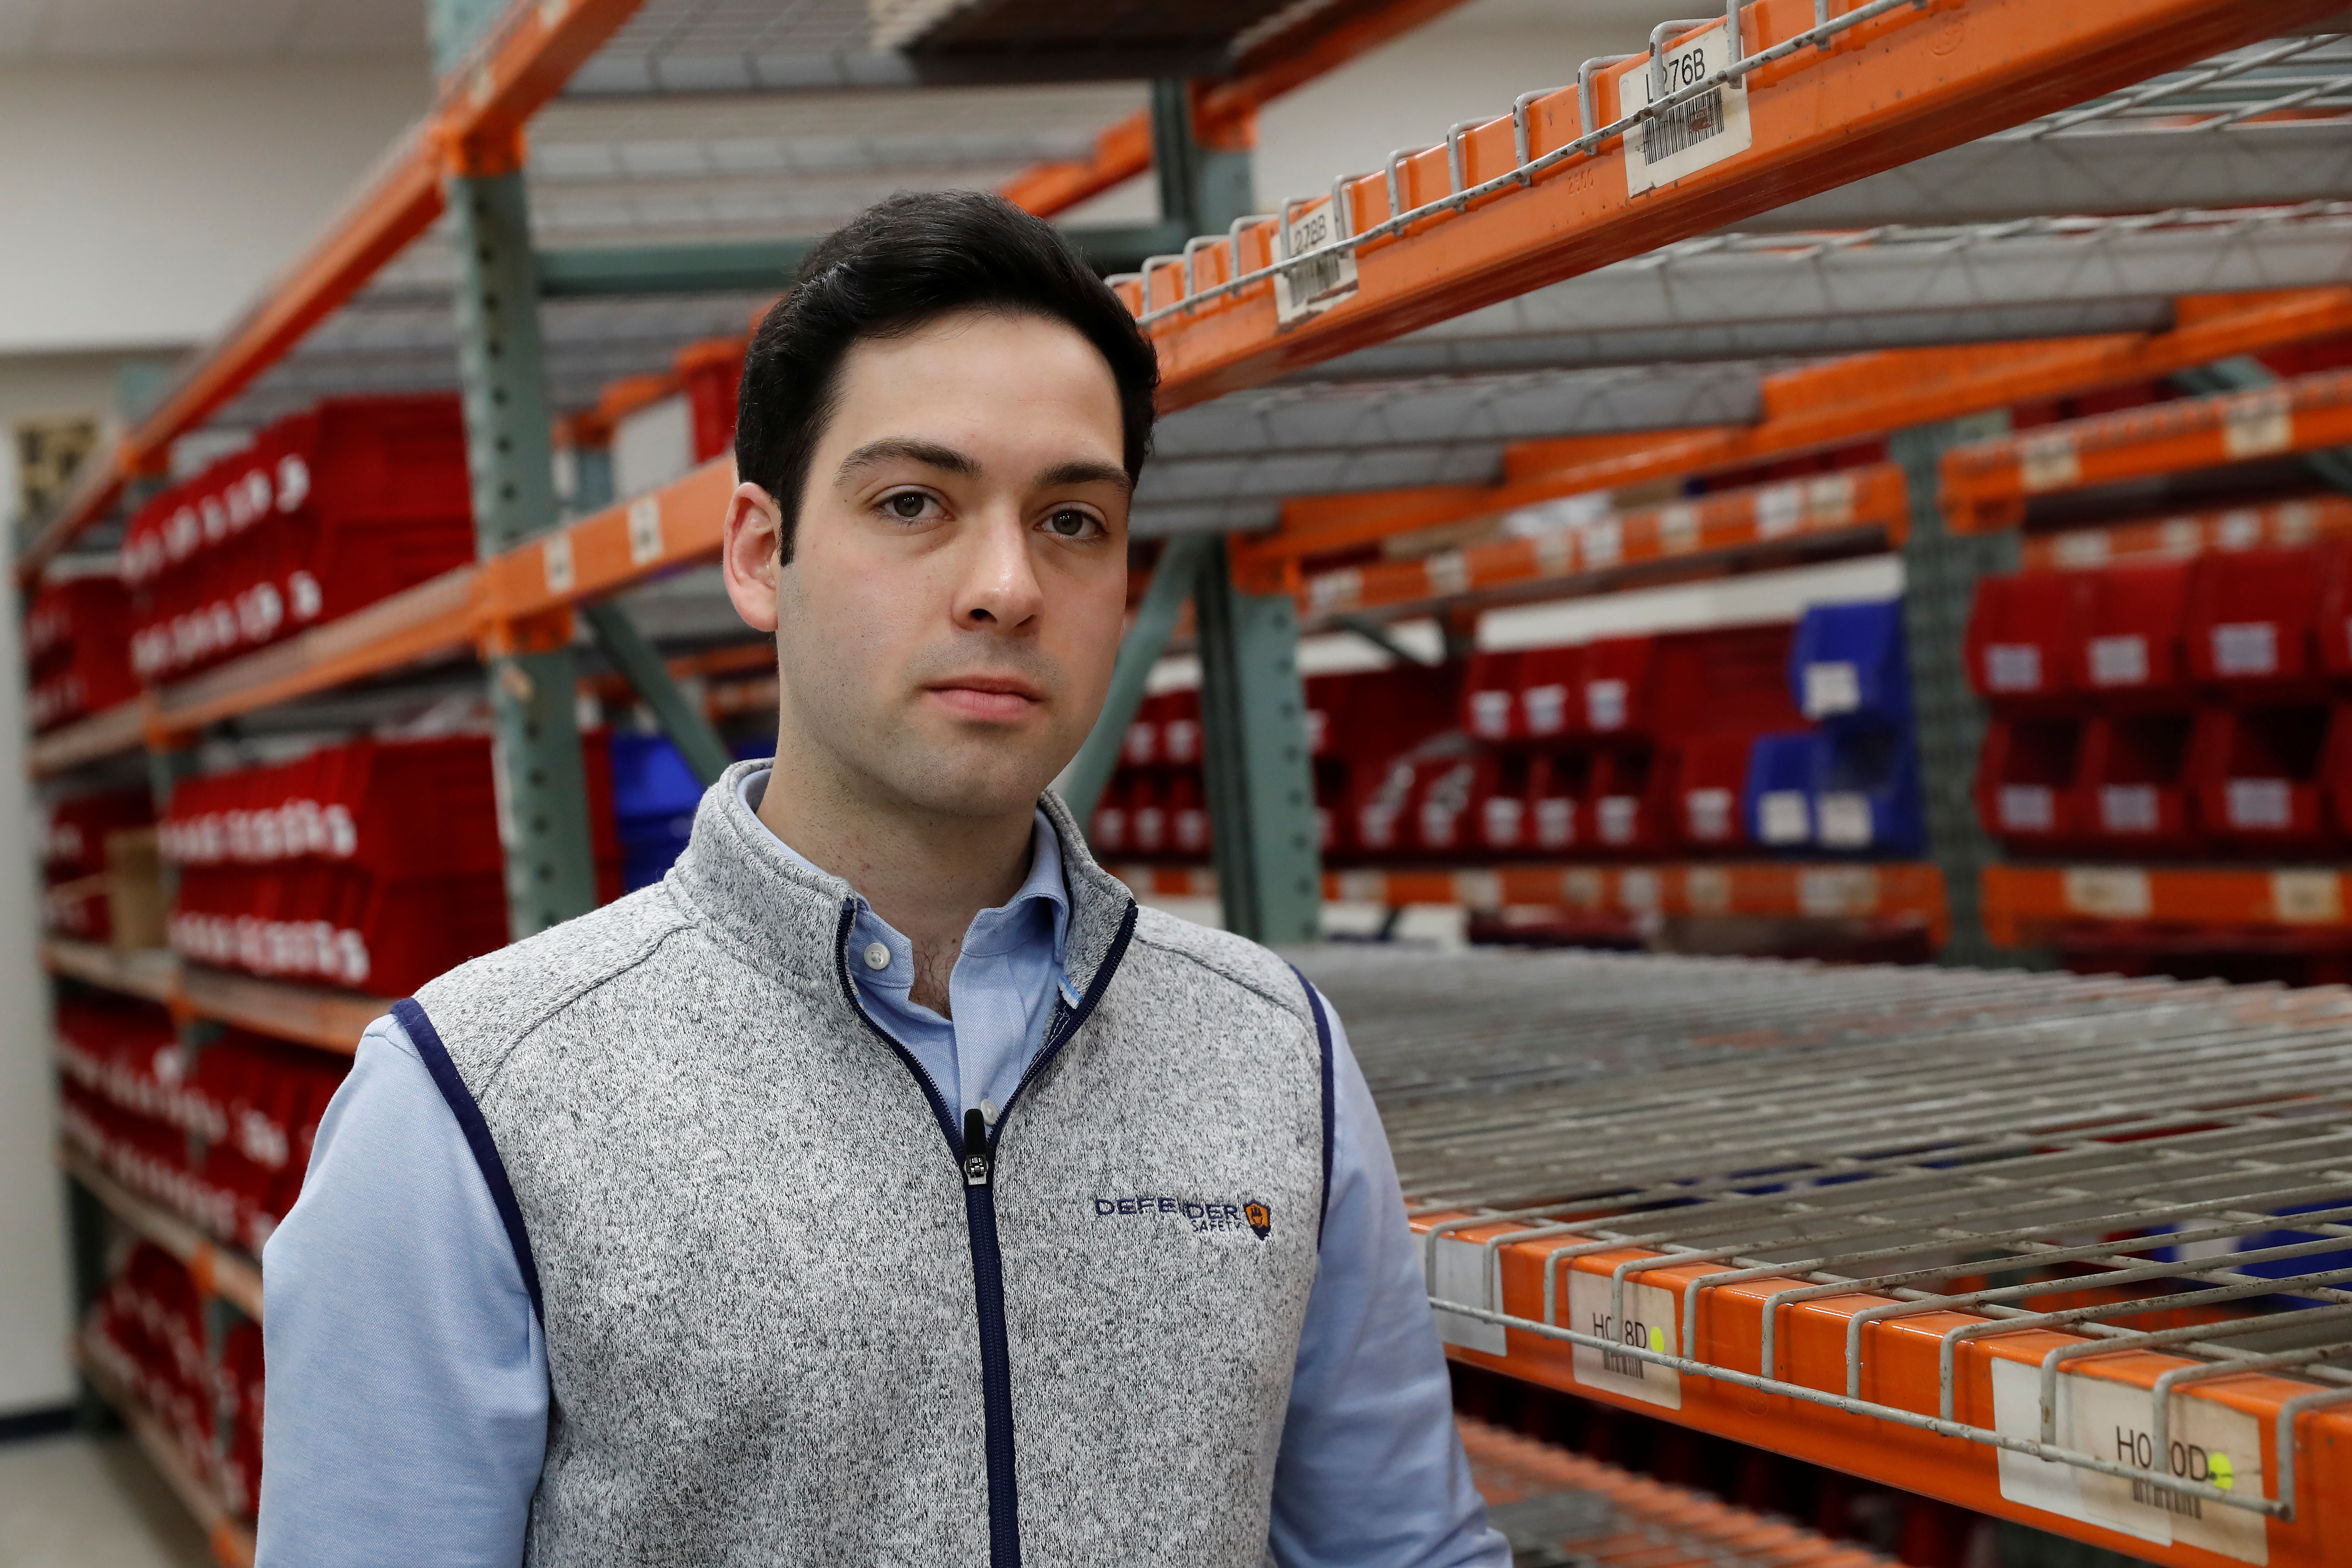 Teddy Haggerty, CEO and Founder of Defender Safety, stands inside his warehouse in Plainview, New York, U.S., March 24, 2021. REUTERS/Shannon Stapleton